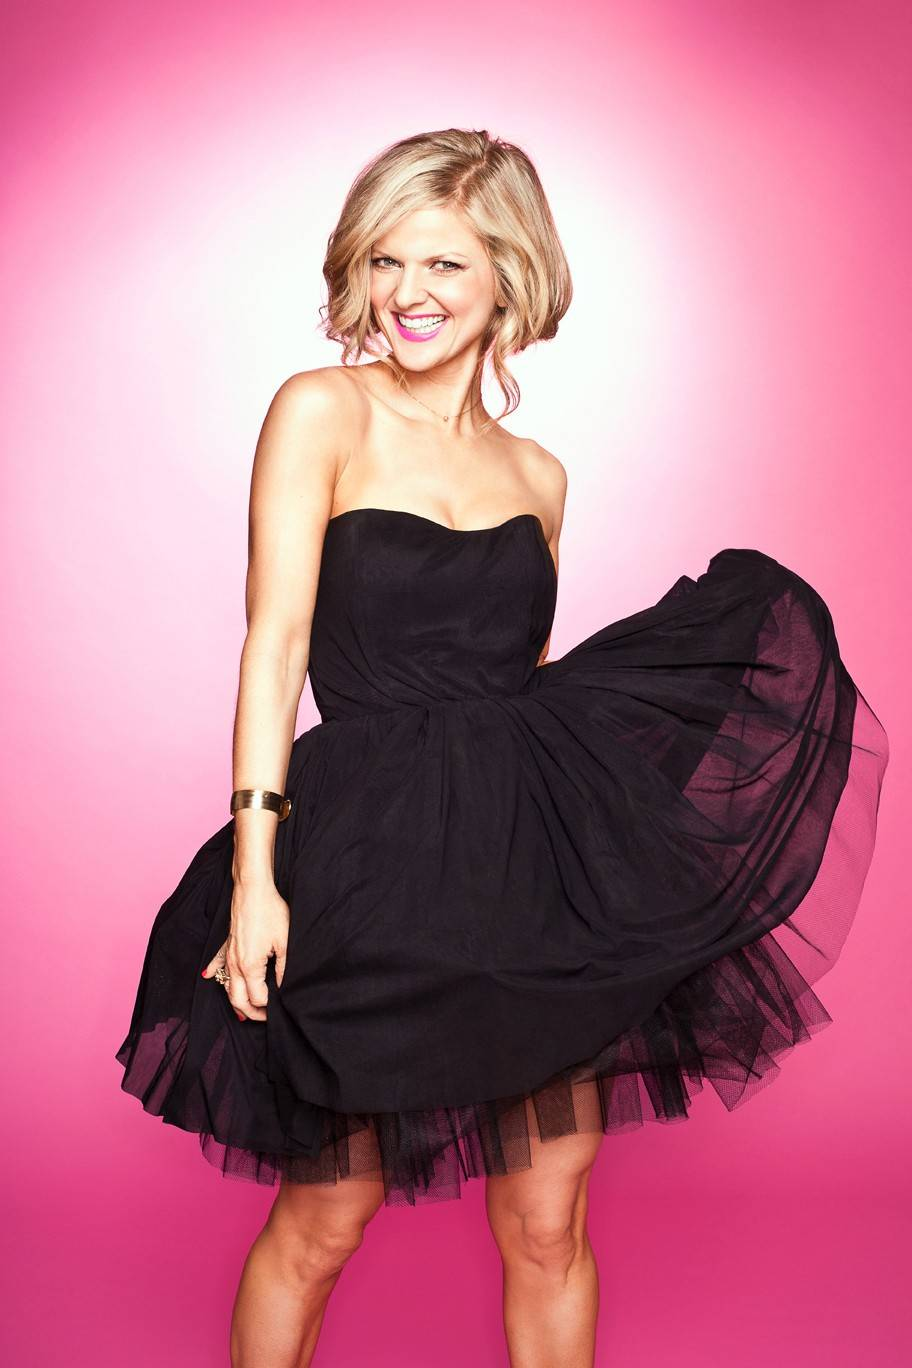 Comedian Arden Myrin performs at Zanies in Chicago and Rosemont this weekend.